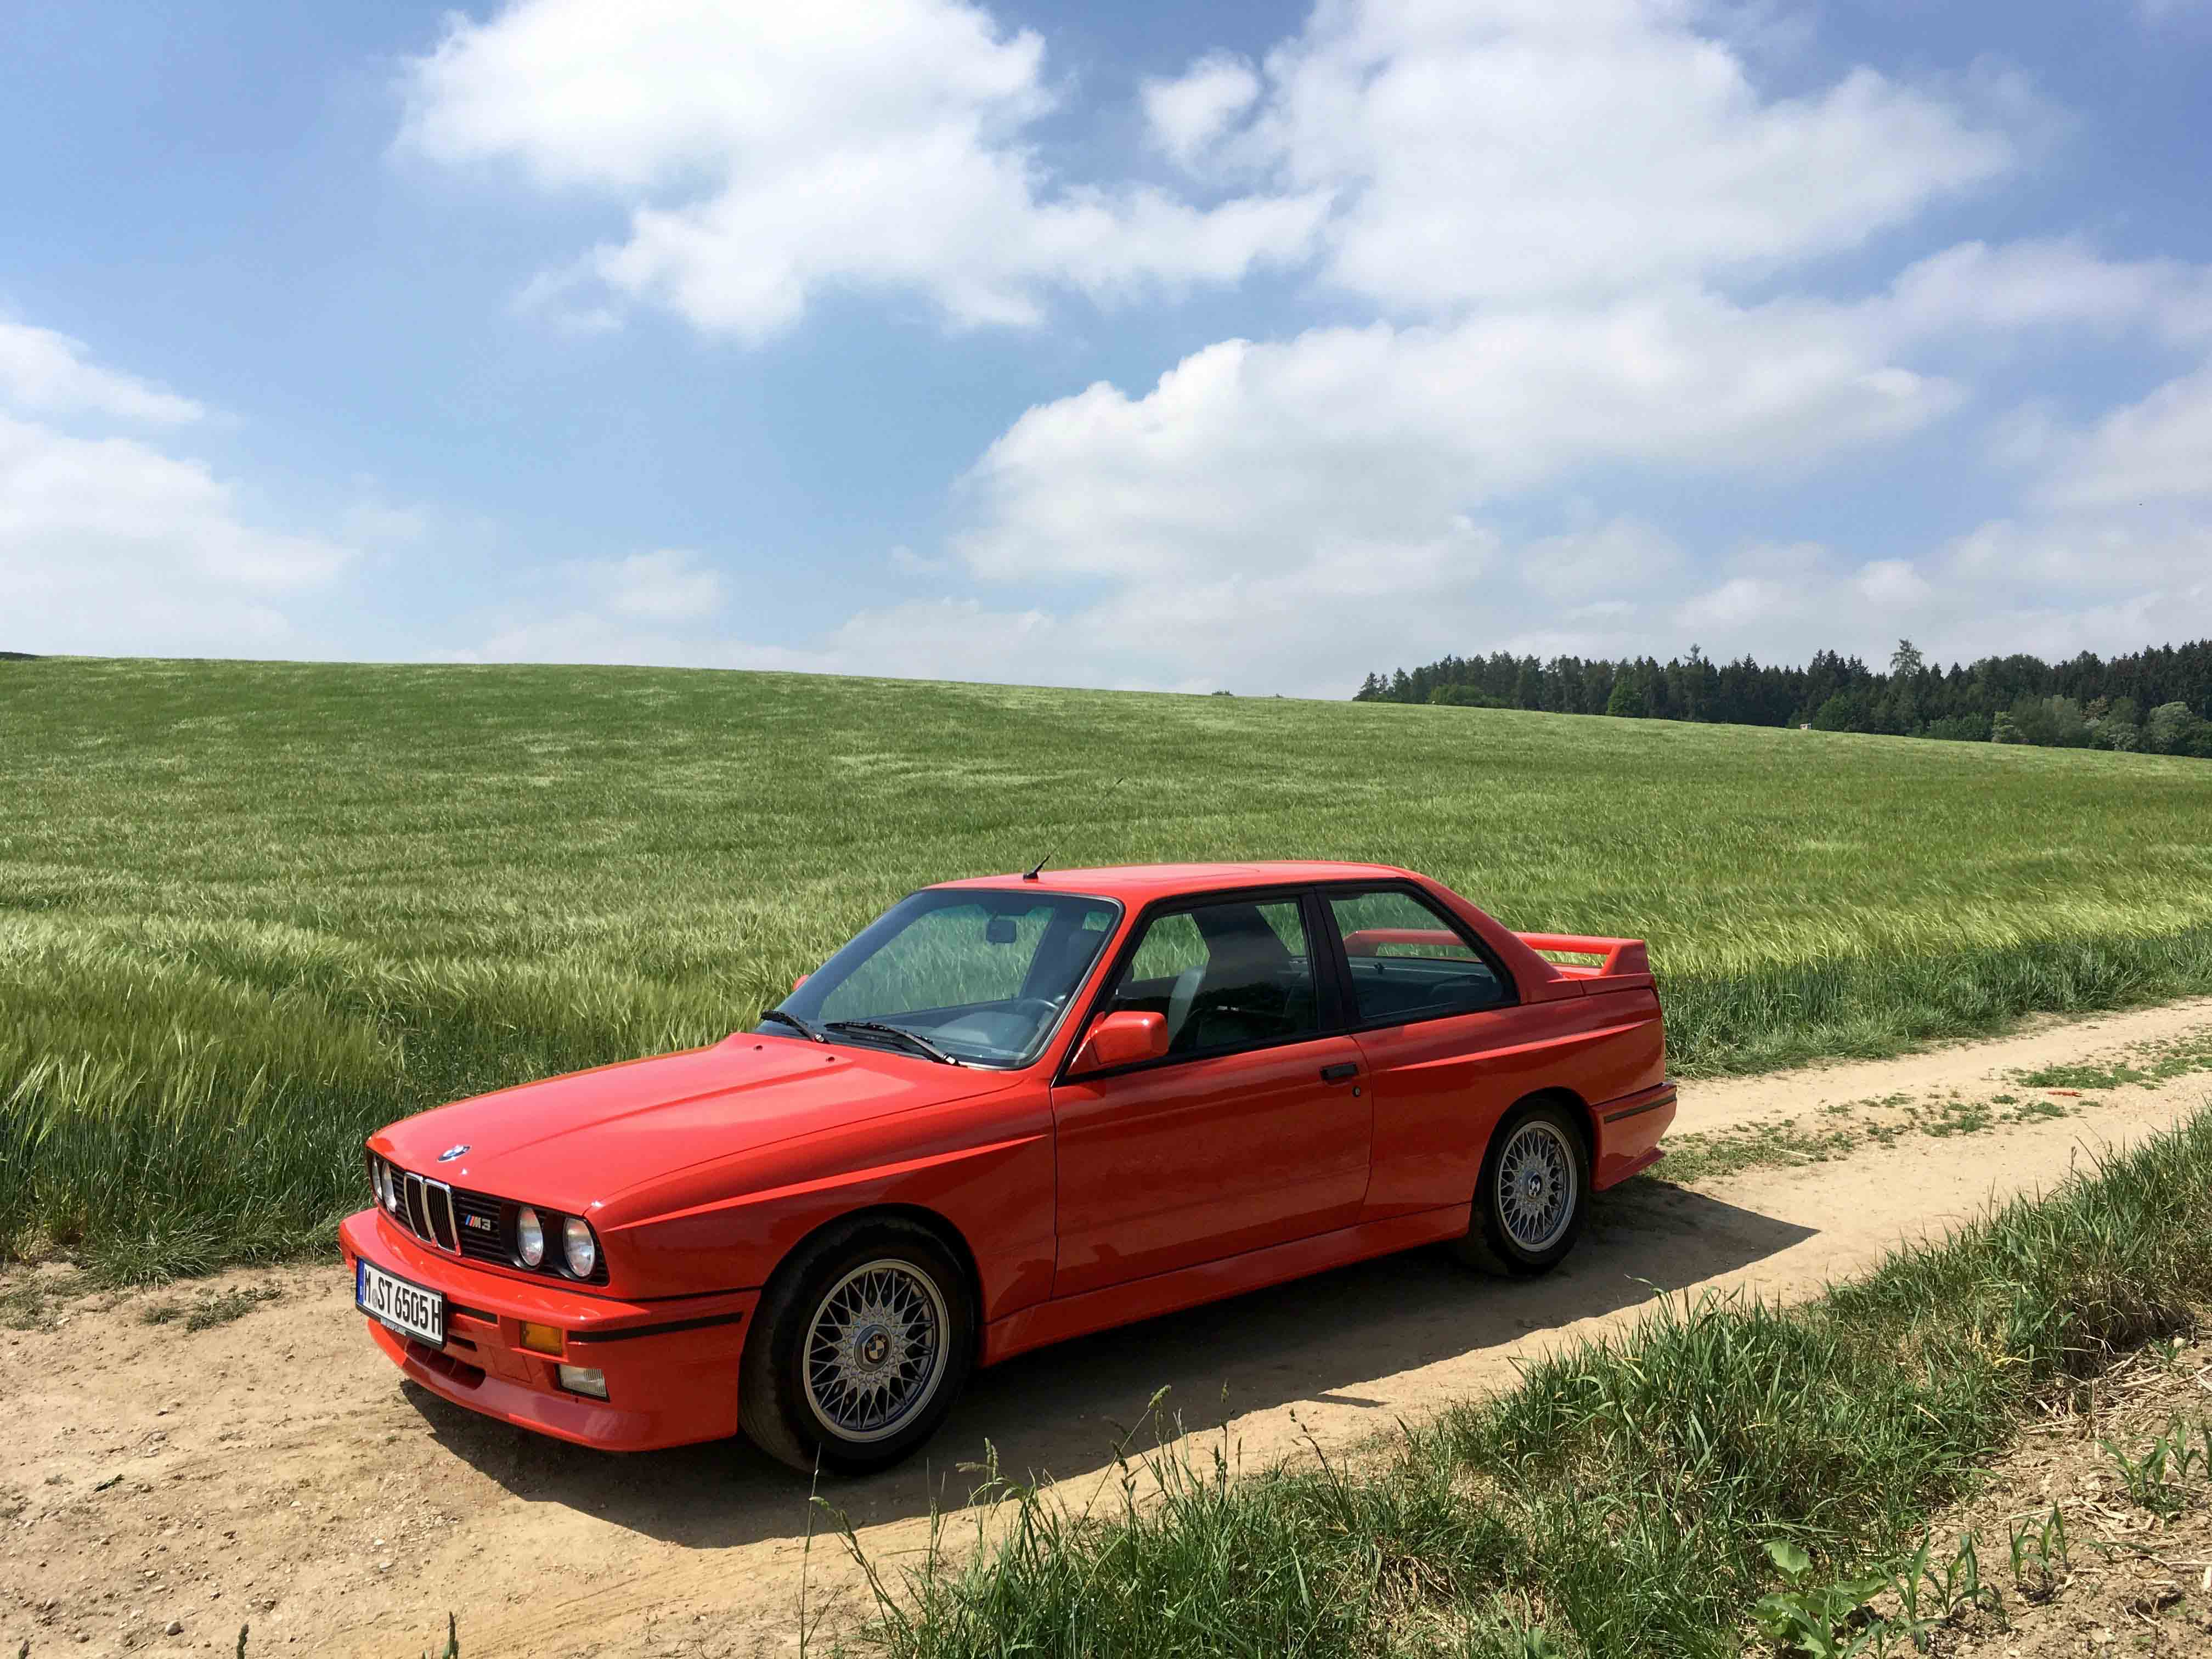 1987 BMW M3 Green field background dirt road